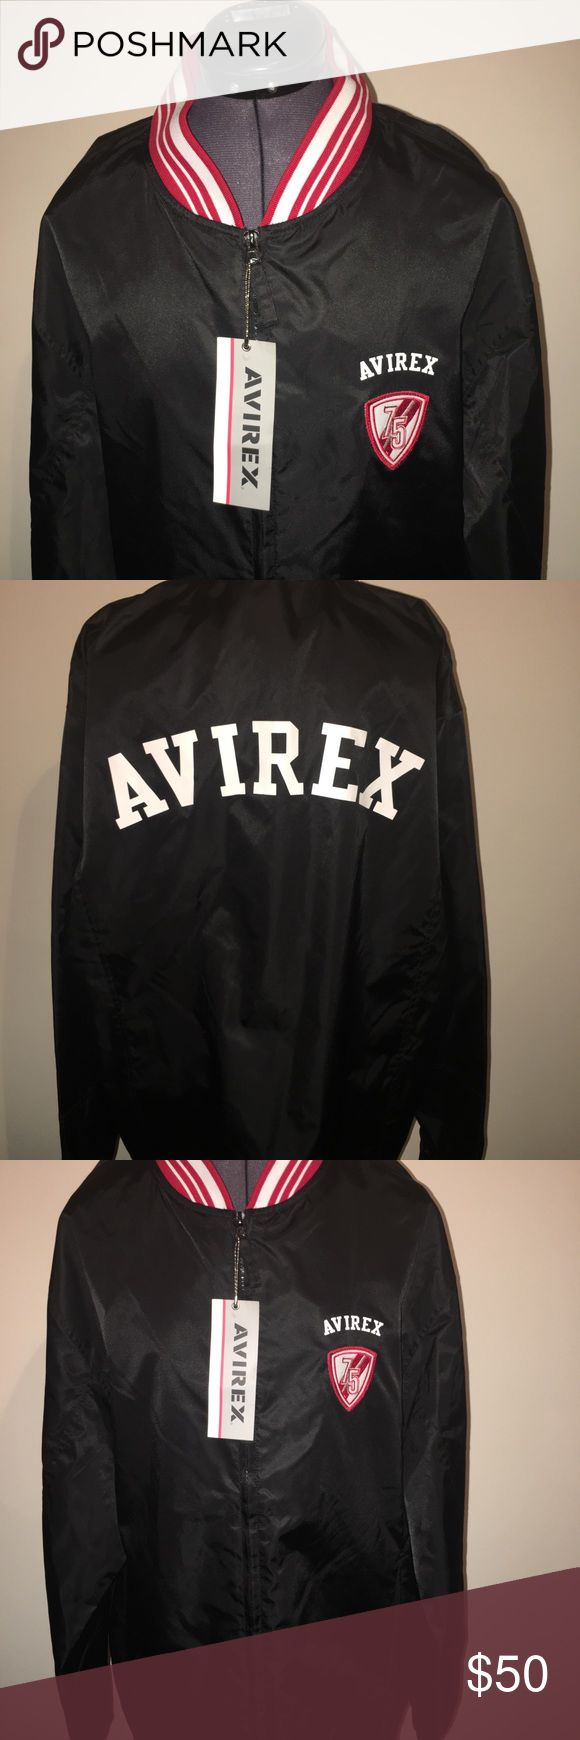 New Men's 1975 Avirex Jacket Large 😎😎 Hey guys check out this classic throwback! In this listing you are purchasing a brand new men's red, white & black 1975 Avirex Jacket! This guy is brand new with tags and ready to be worn! The outside is 100 % Nylon — the crunchy track jacket type material and the inside lining is 100 % polyester! Guaranteed to sell fast! 😎😎 Avirex Jackets & Coats Lightweight & Shirt Jackets